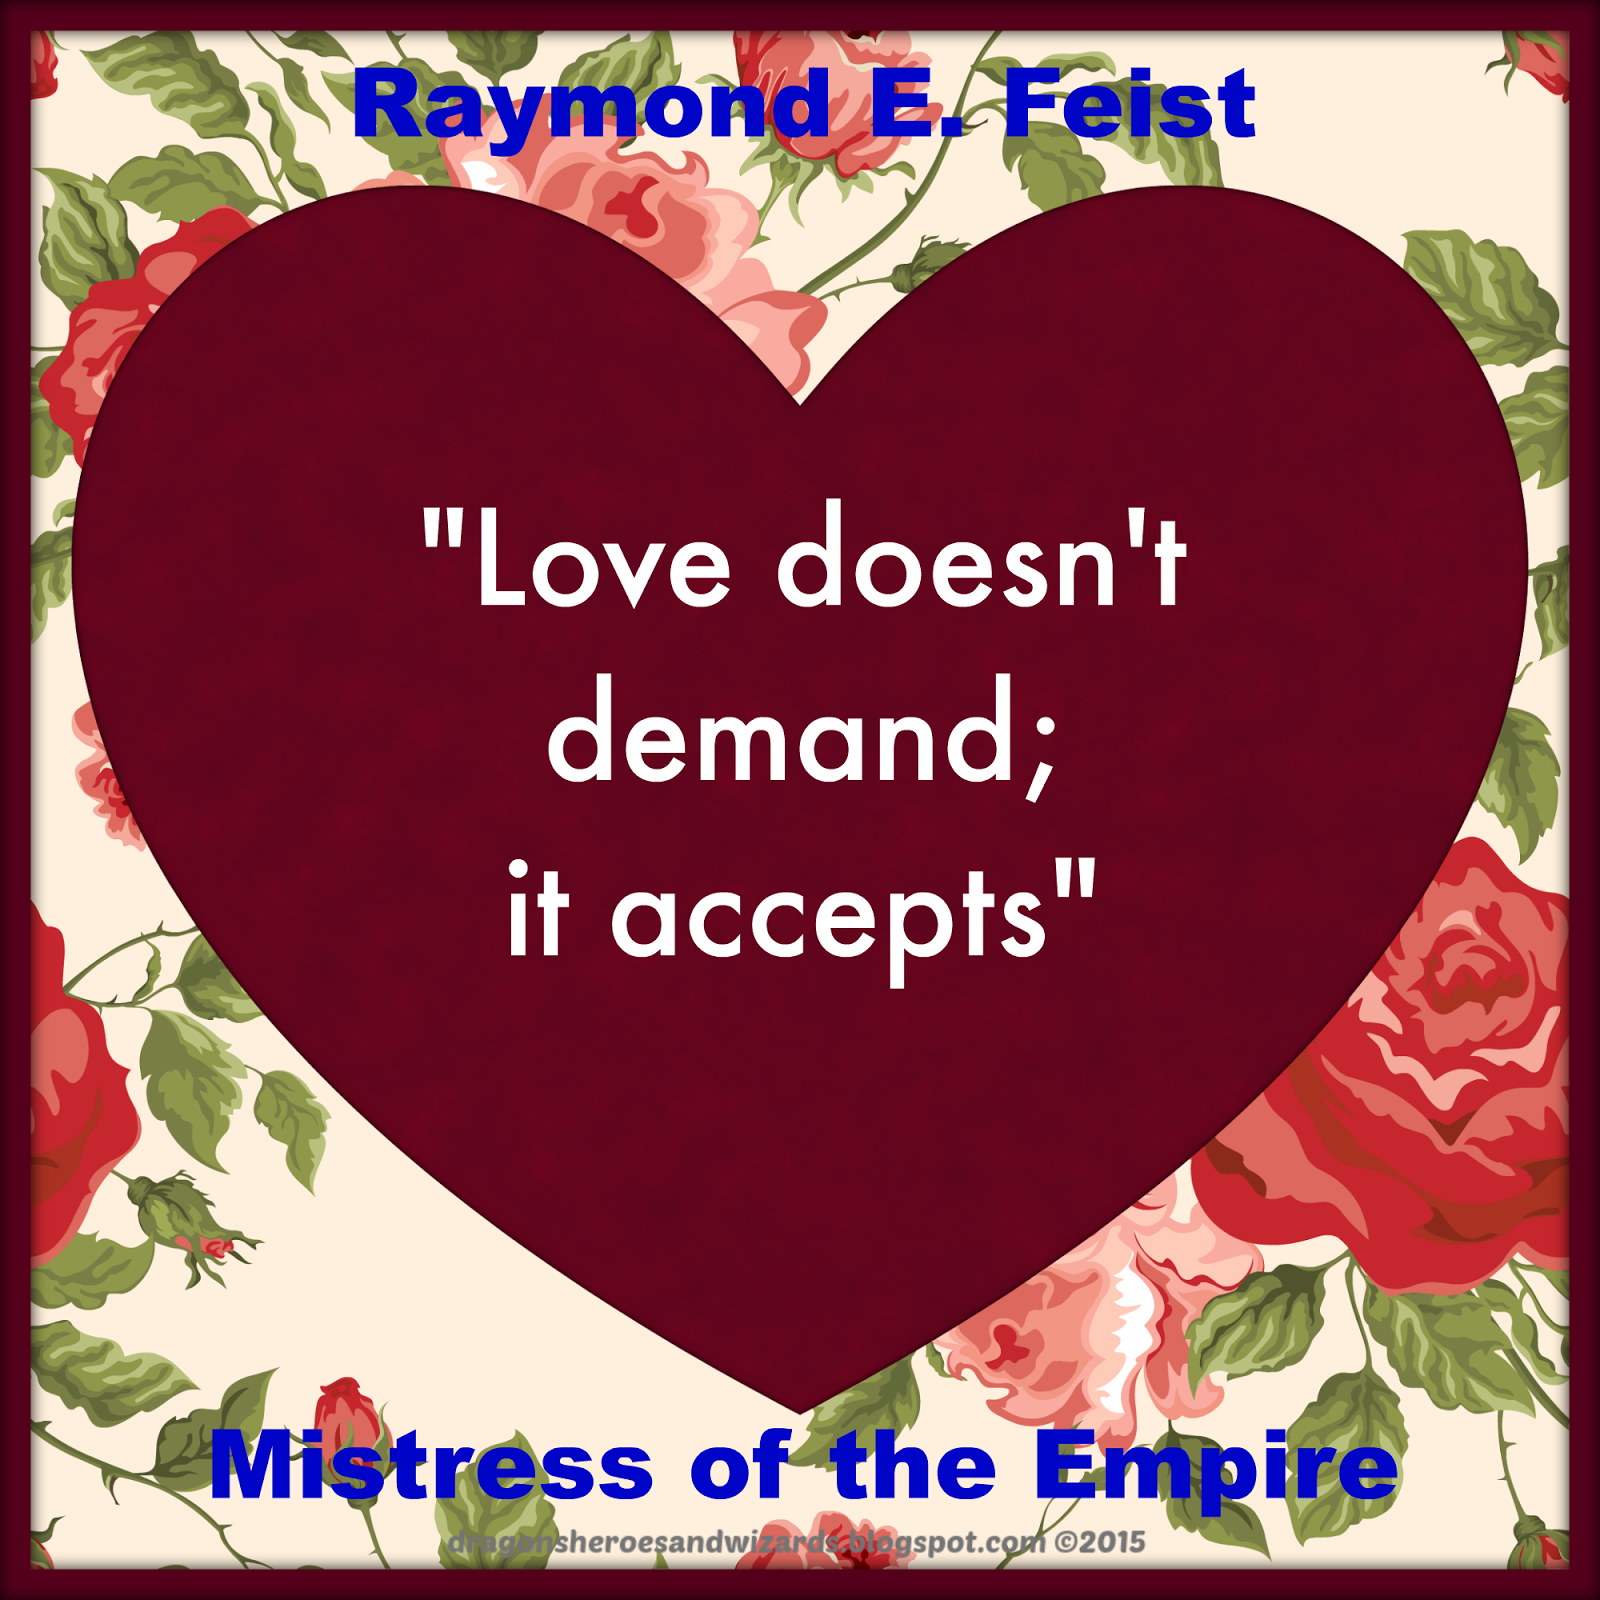 Love Doesn't Demand; It Accepts ~ Quote from Mistress of the Empire (Riftwar Cycle, Empire Trilogy) by Raymond Feist and Janny Wurts.